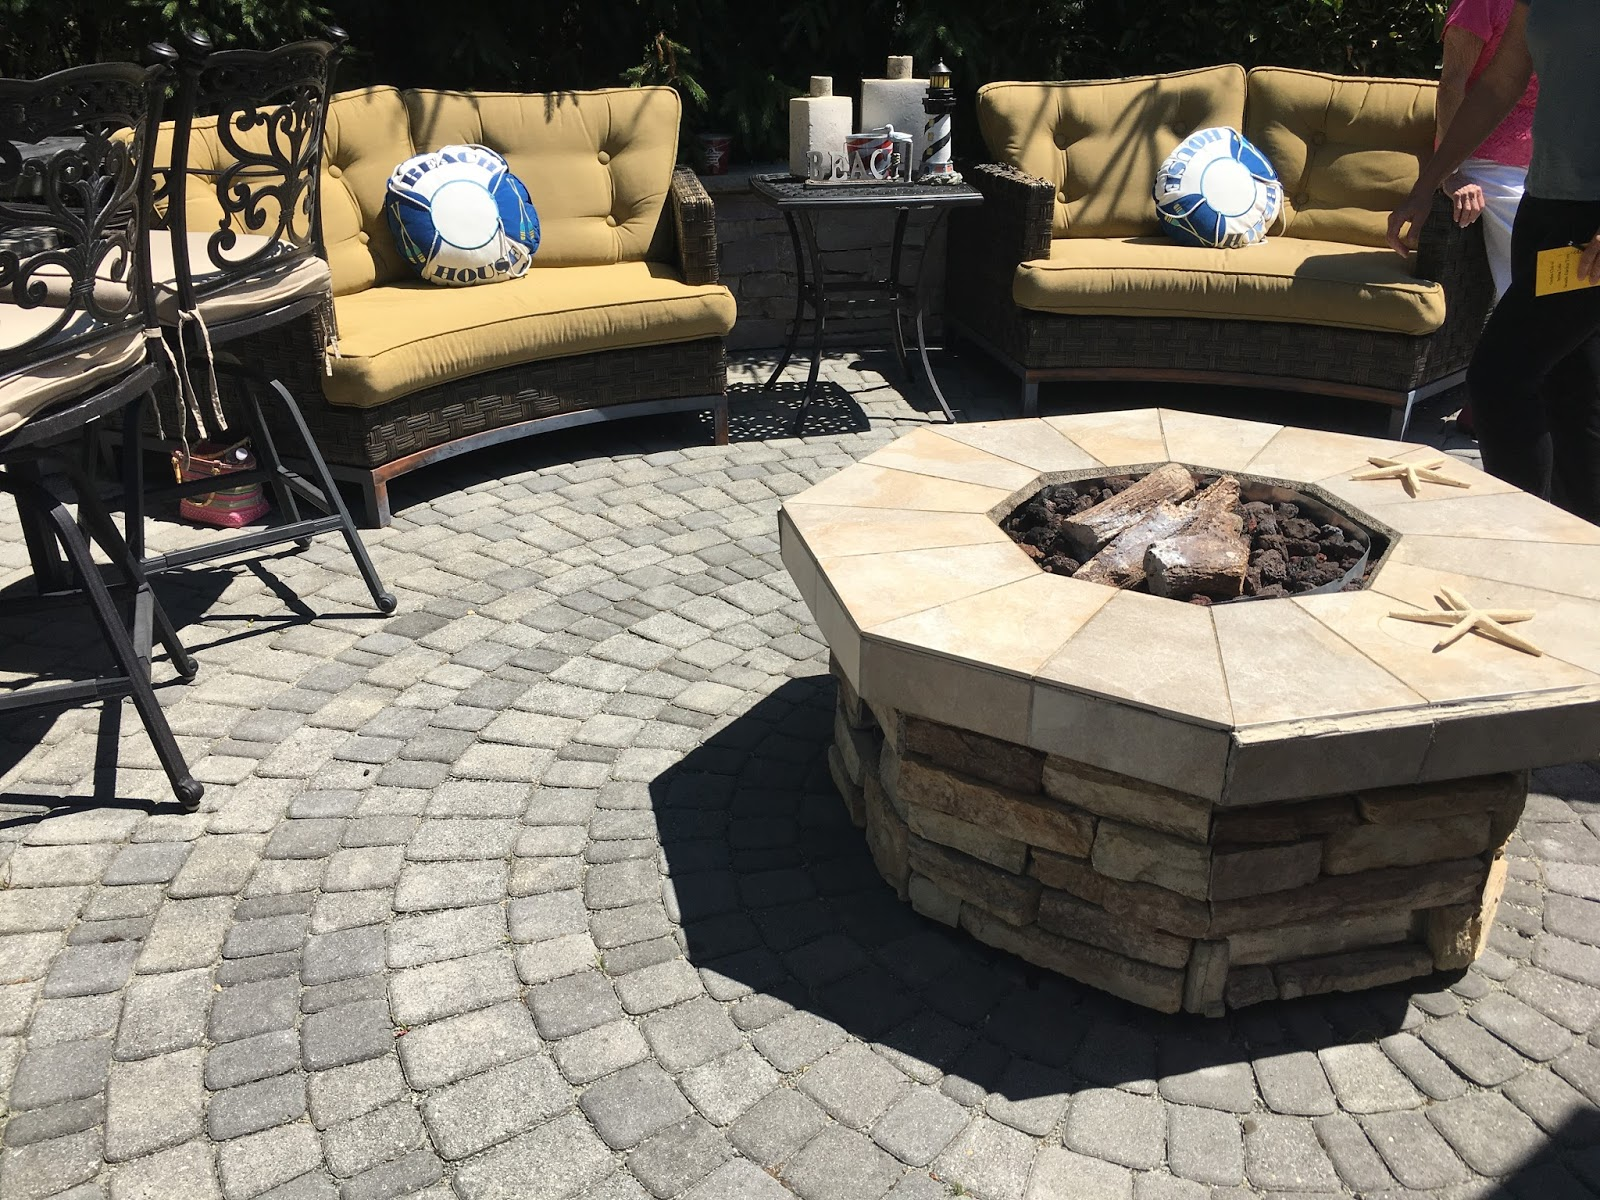 Outdoor seating around fire pit